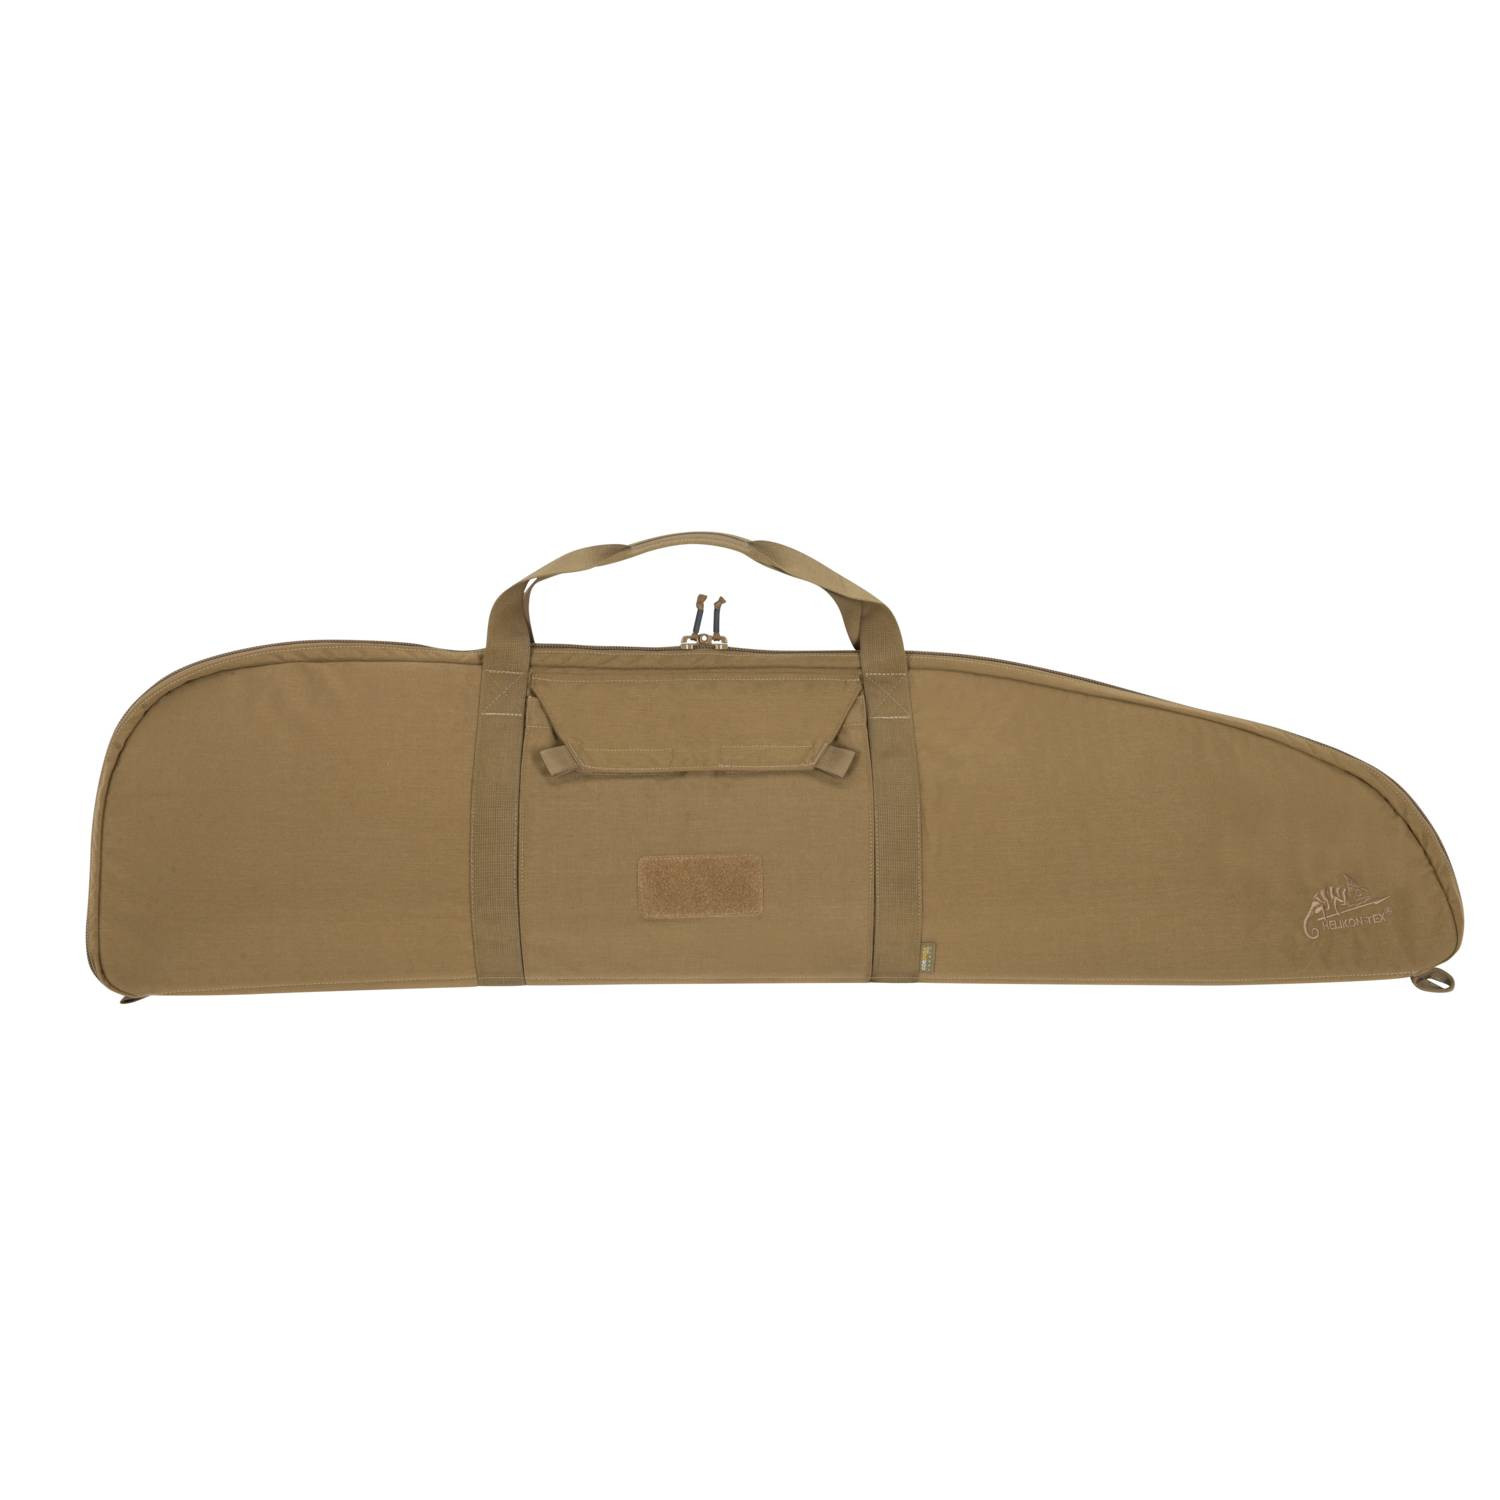 Pokrowiec Basic Rifle Case Detal 1